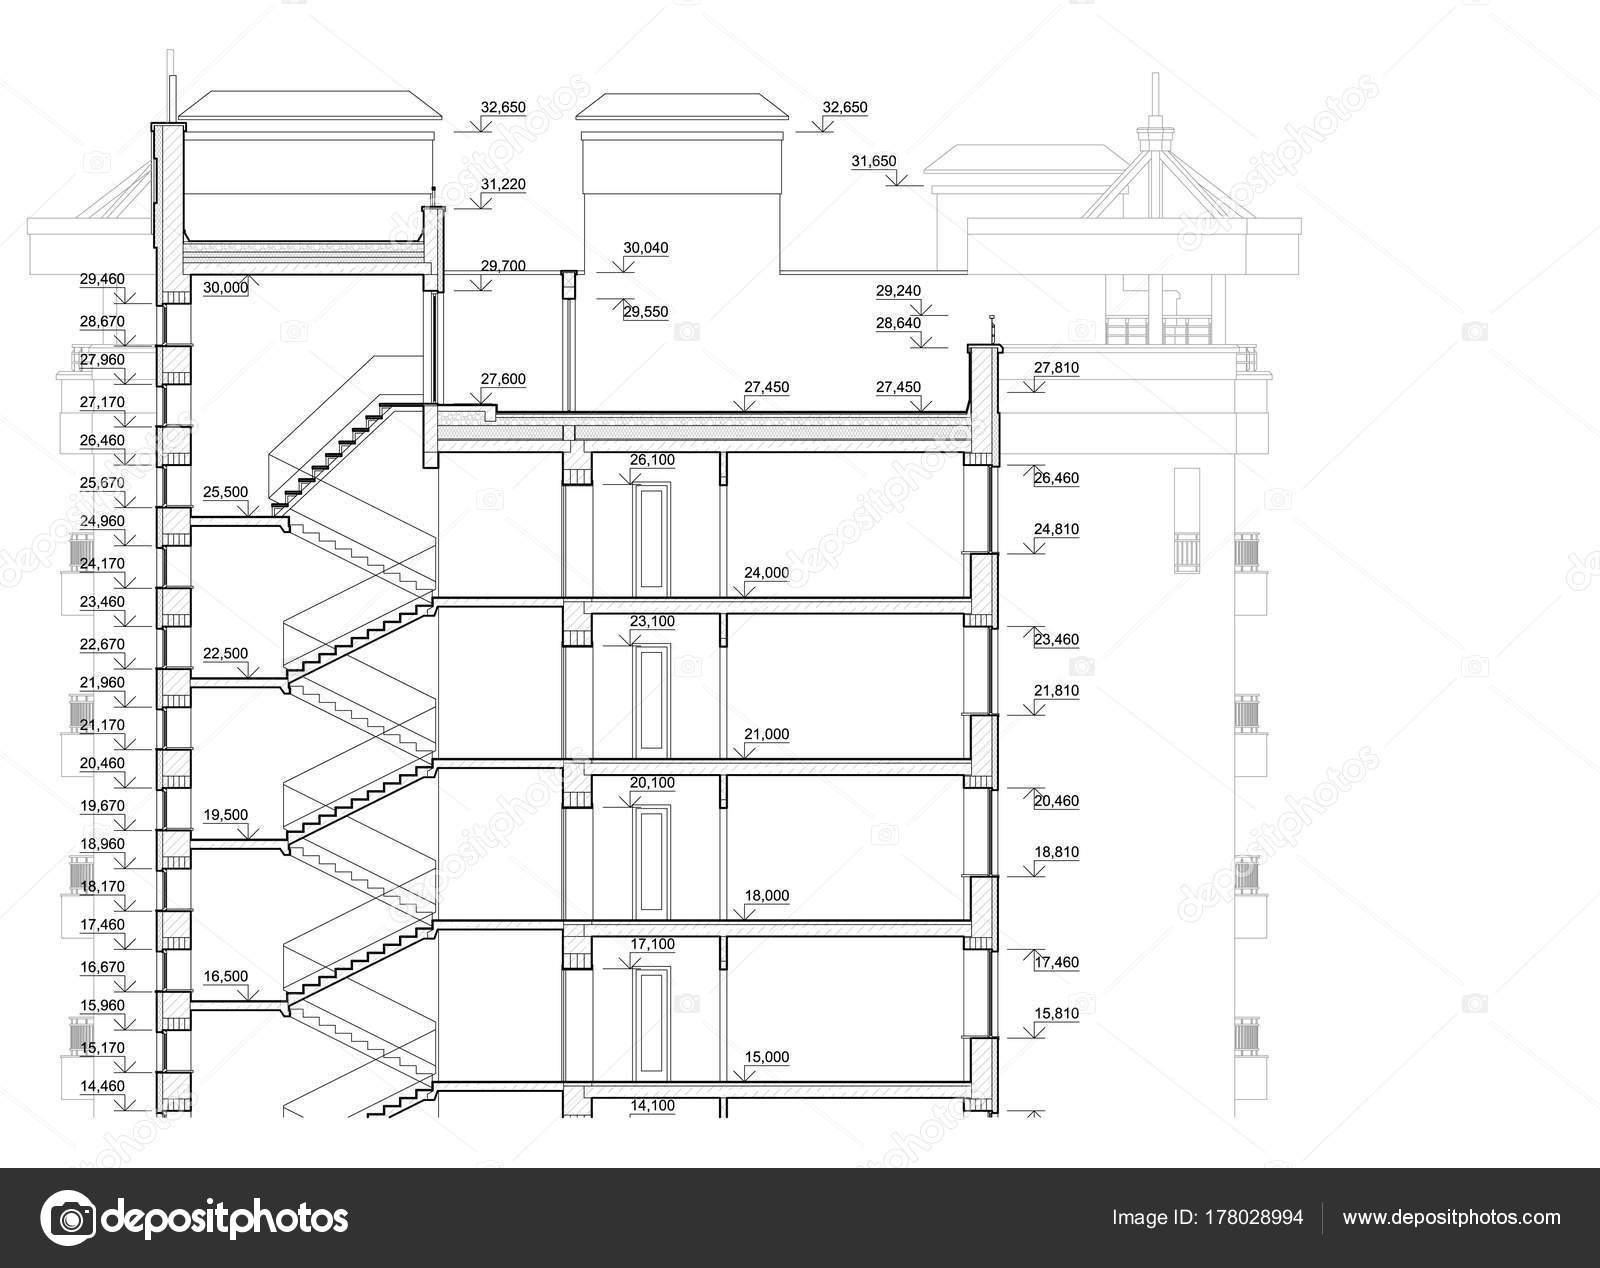 Detailed architectural plan multistory building cross section view detailed architectural plan multistory building cross section view vector blueprint stock vector malvernweather Choice Image